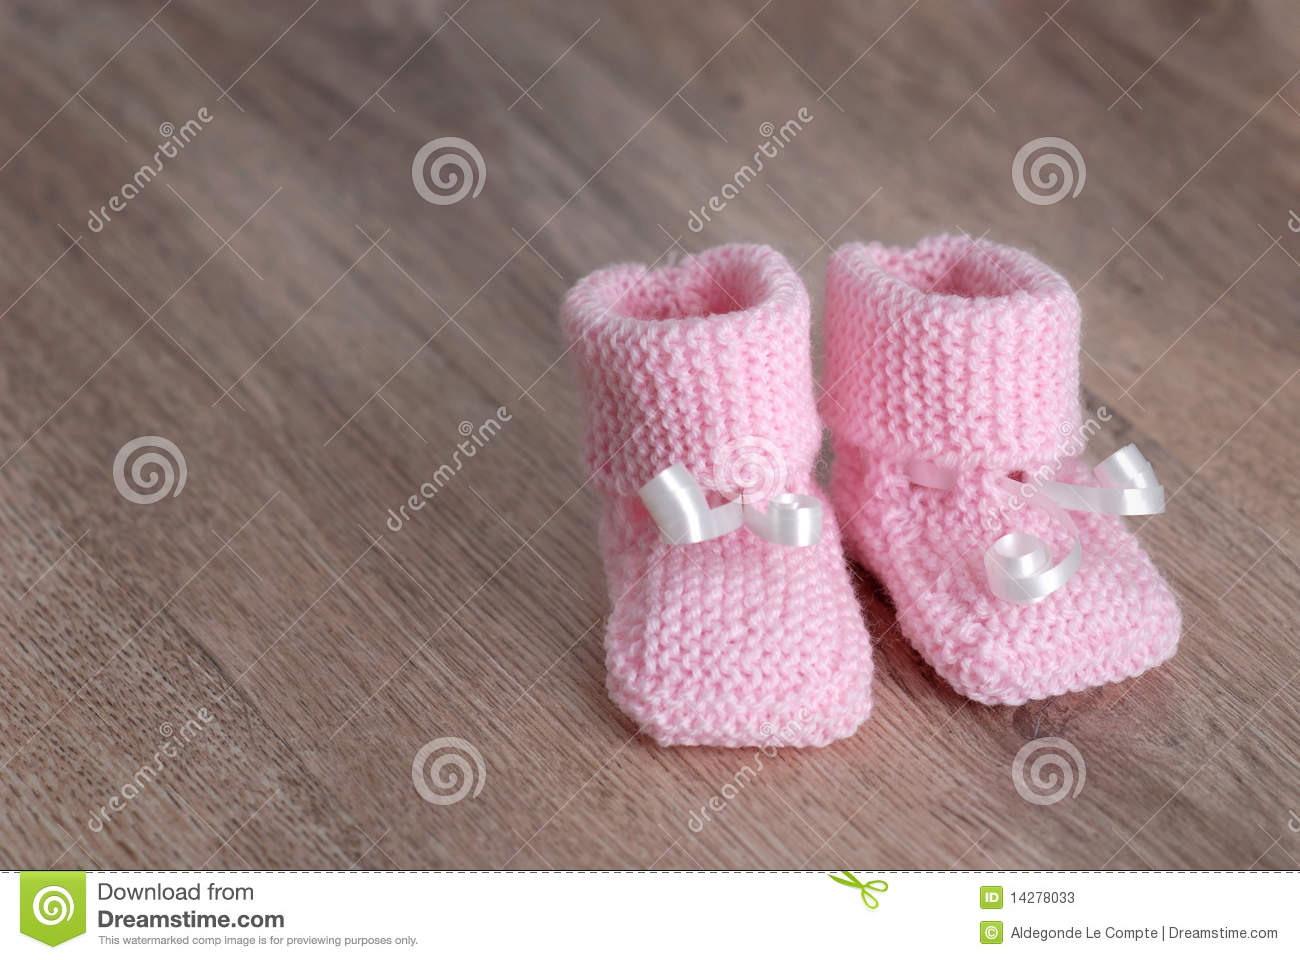 673dee81b92 Pink Baby Booties On Wooden Surface Stock Image - Image of ...